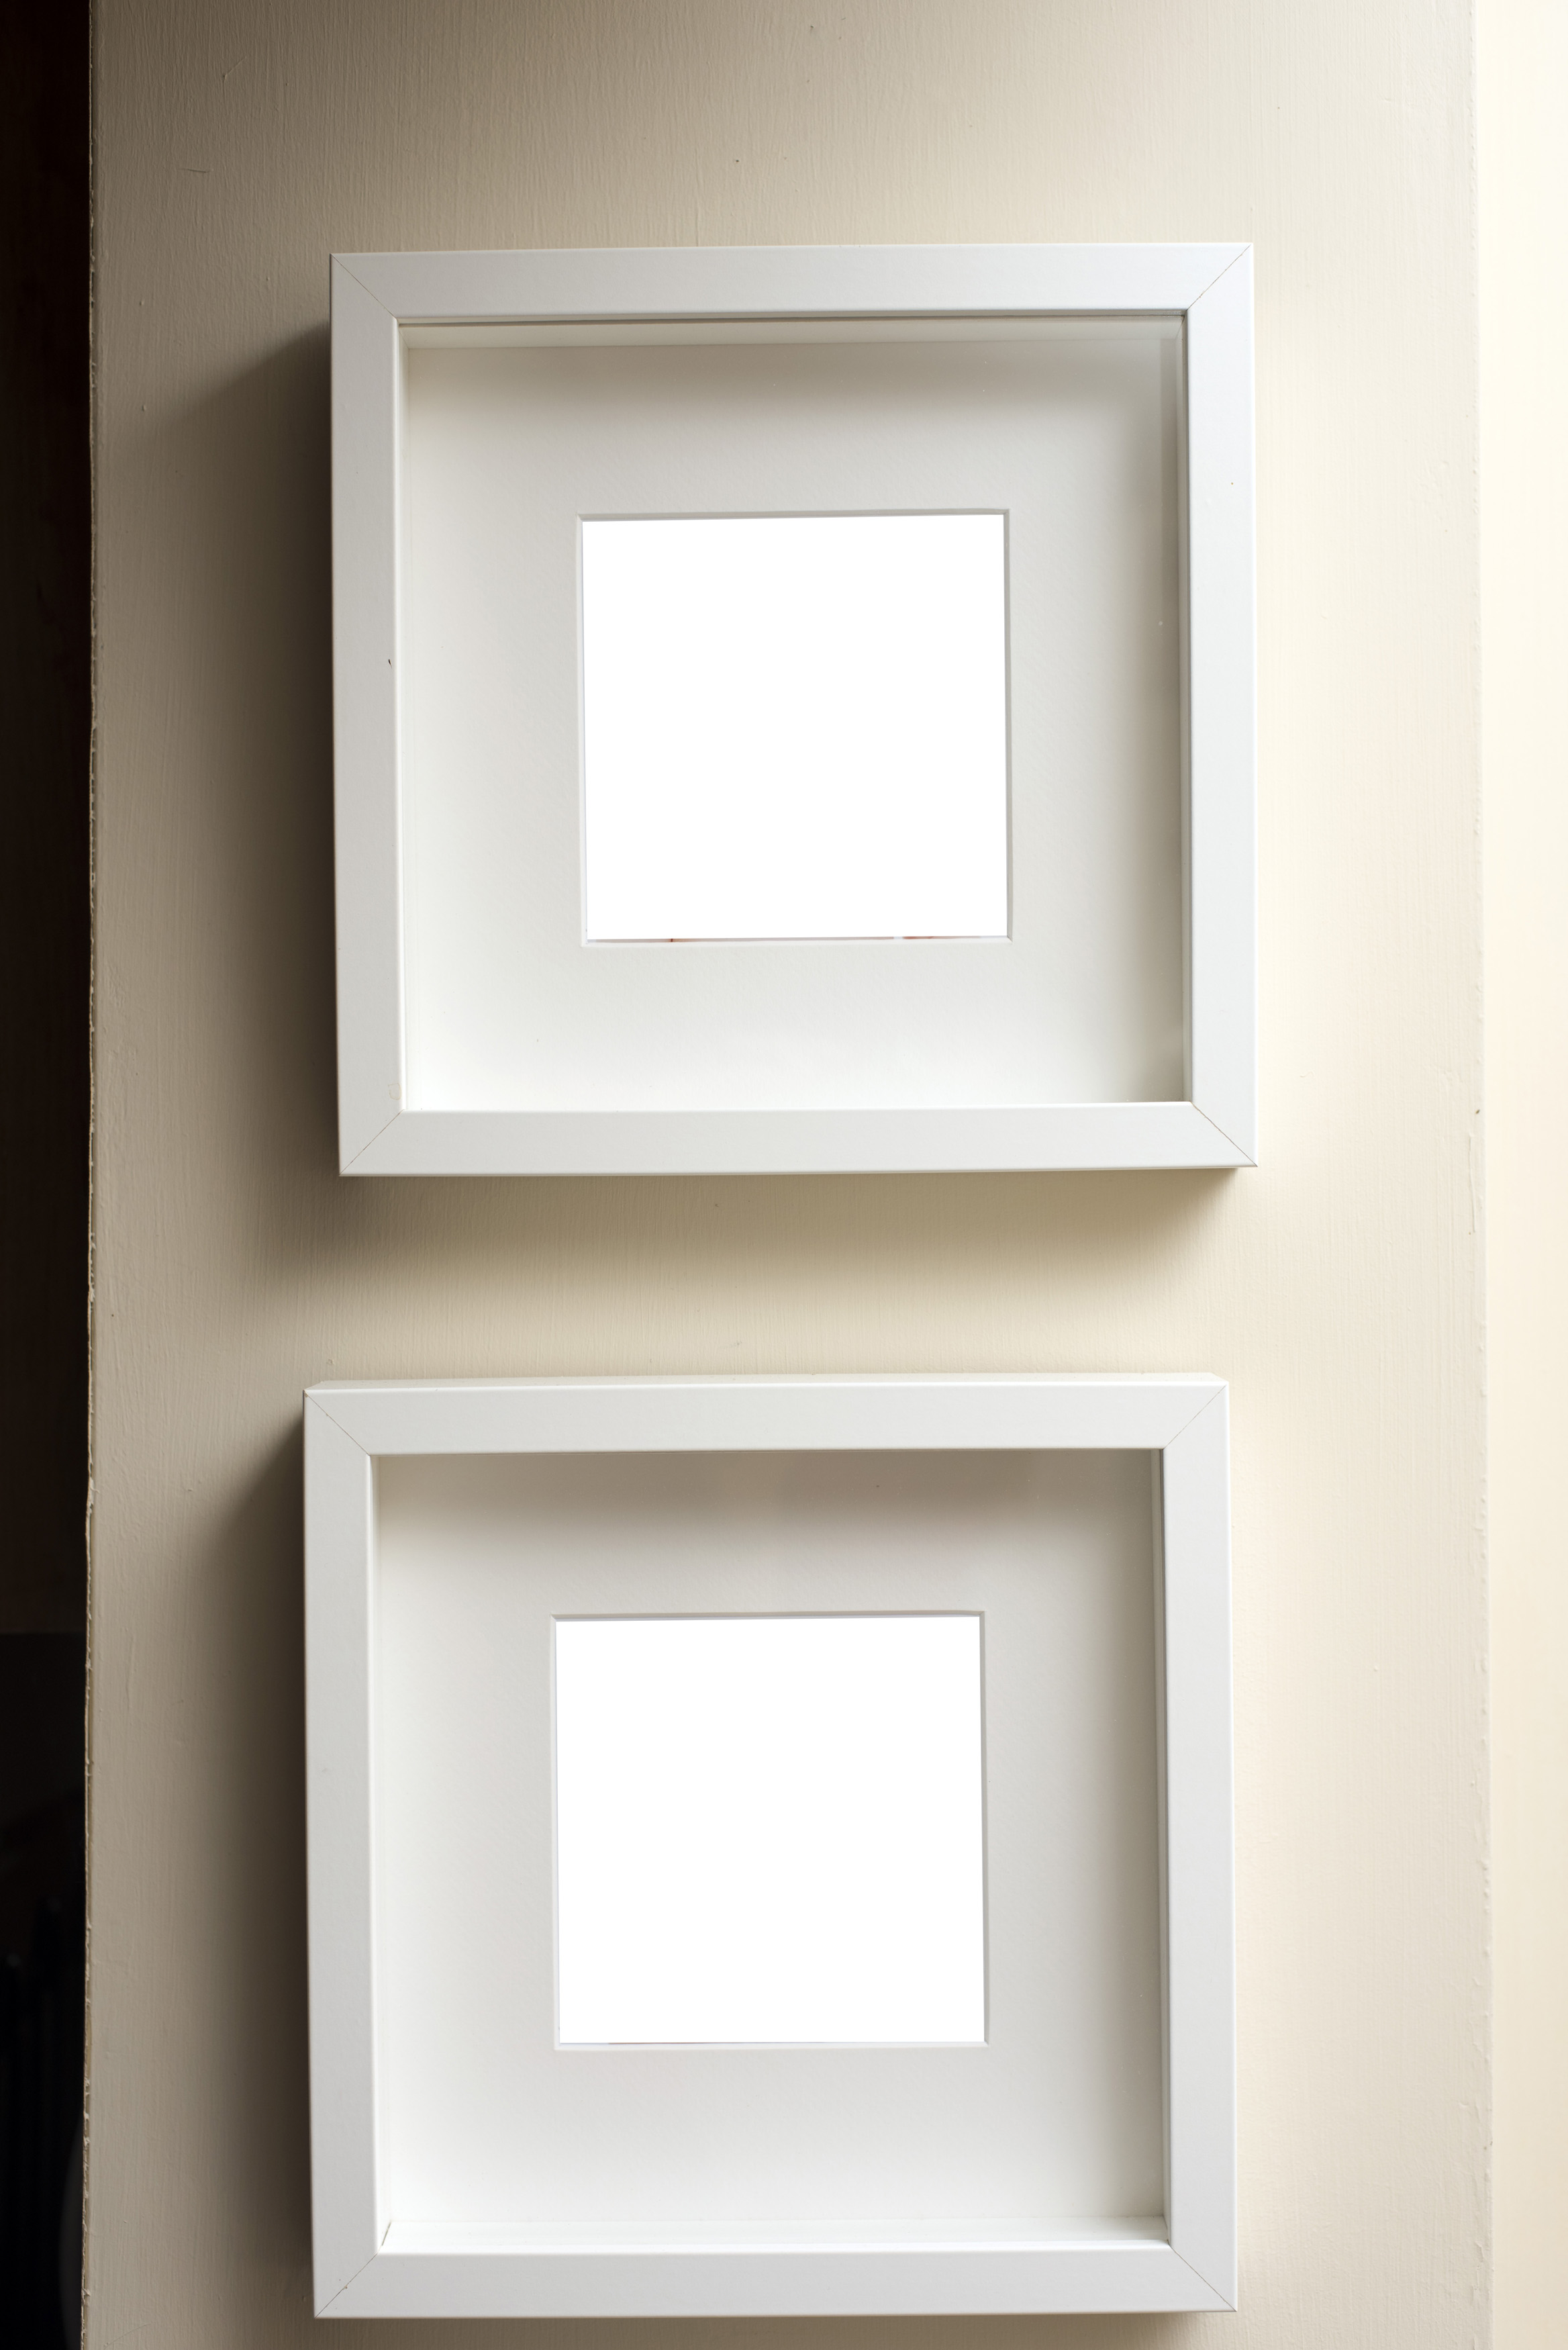 Free image of Two empty square neutral colored frames